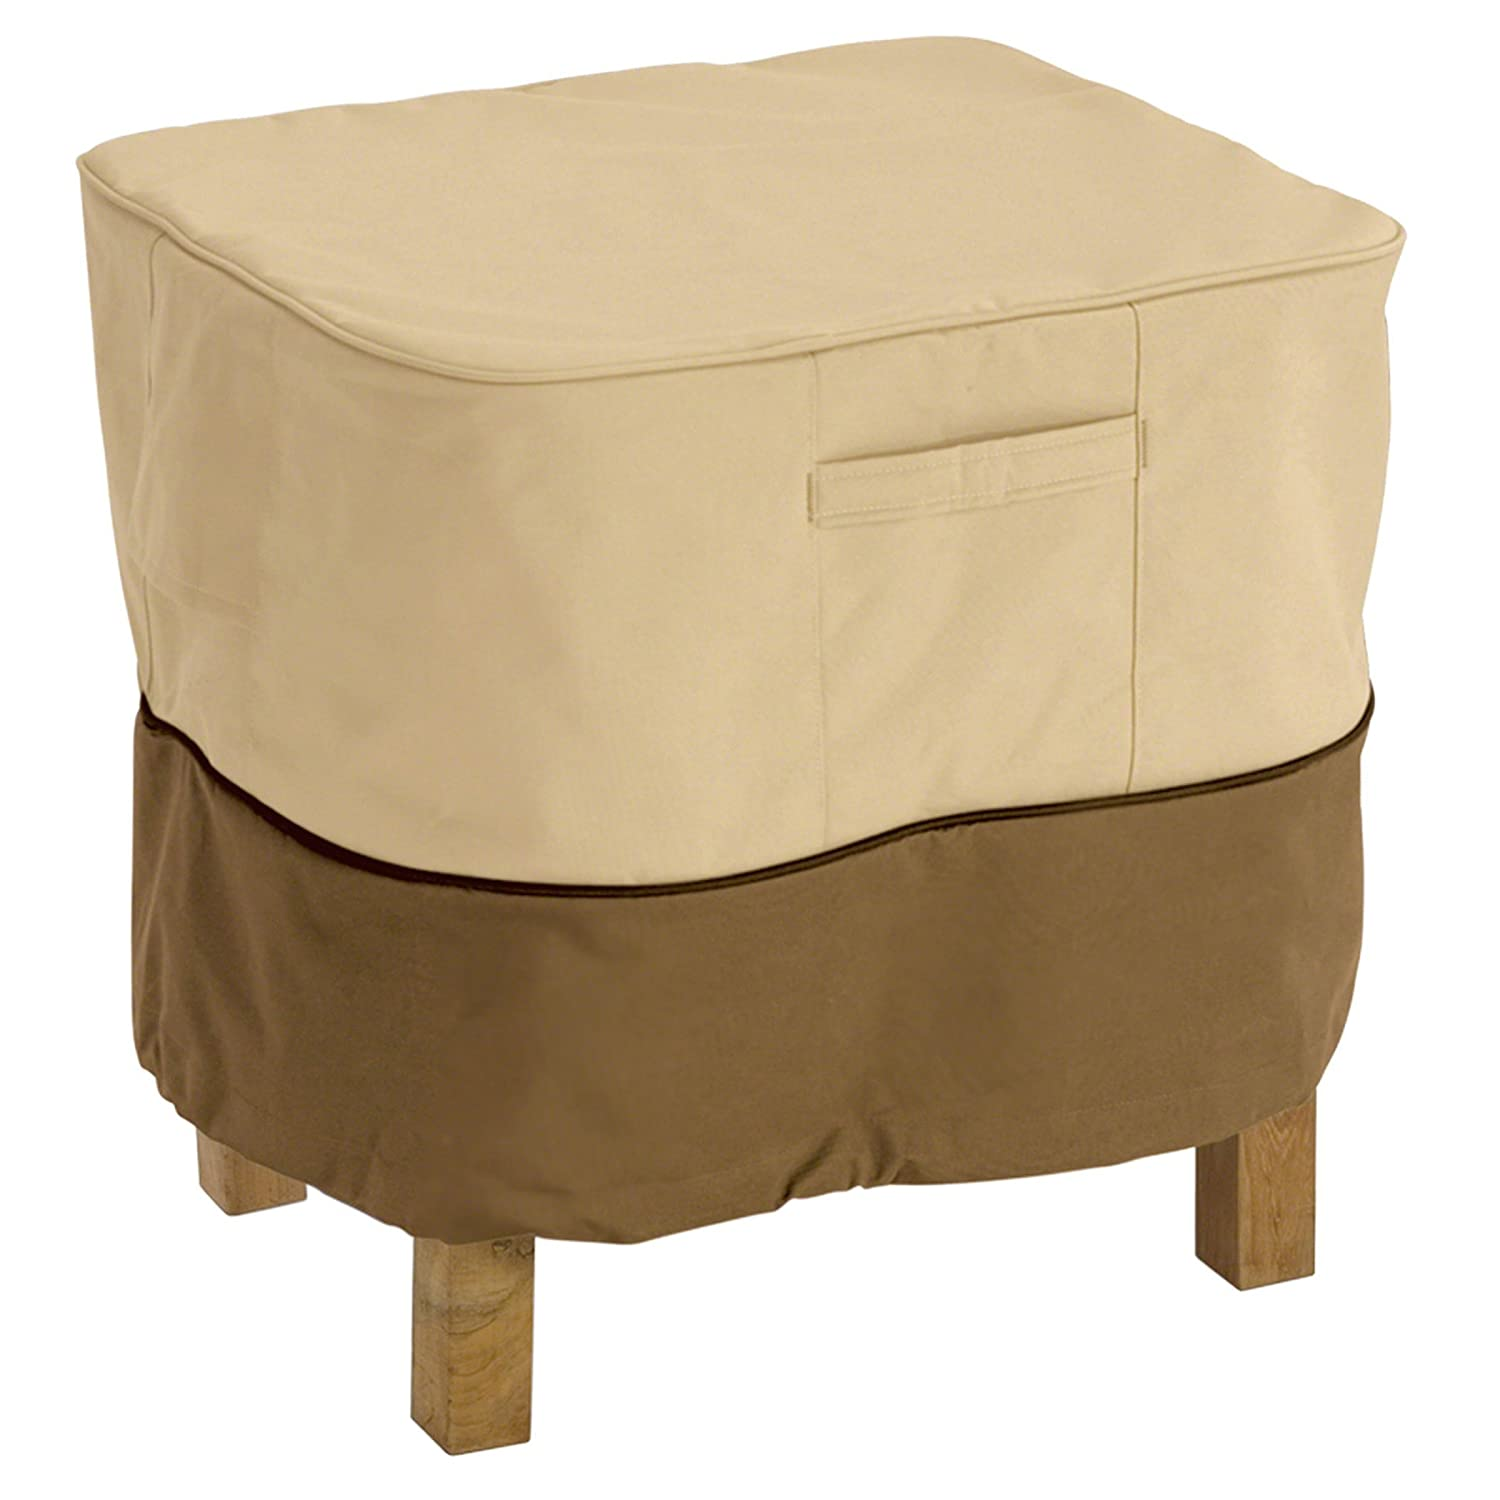 Classic Accessories Veranda Square Patio Ottoman/Side Table Cover, X-Large